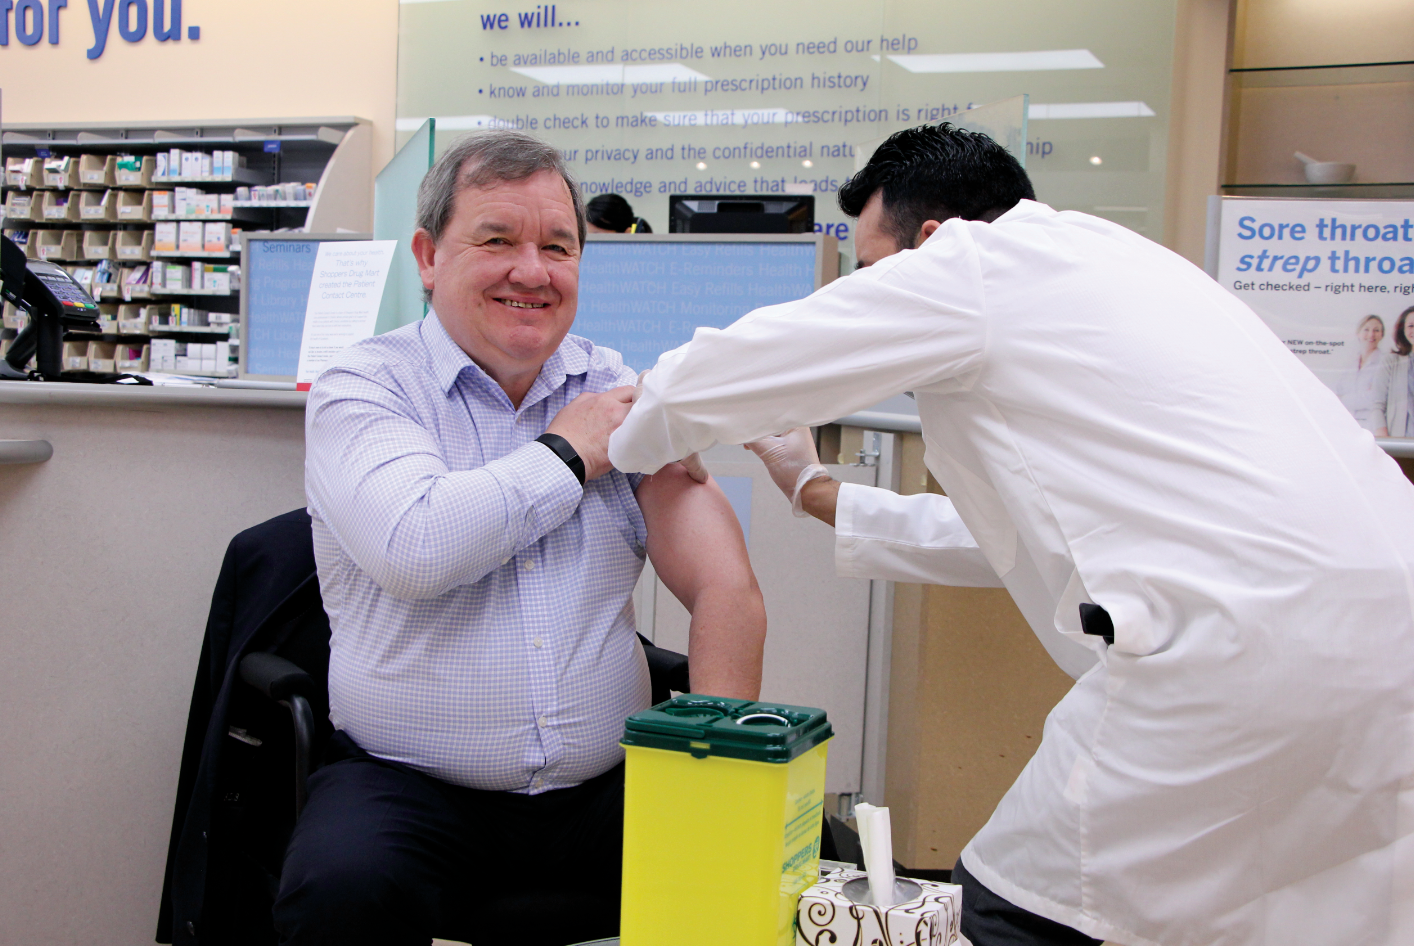 Invite local politicians to get a flu shot at your clinic. Last year, MLA Shane Simpson dropped in for his flu shot  with Anoop Khurana.